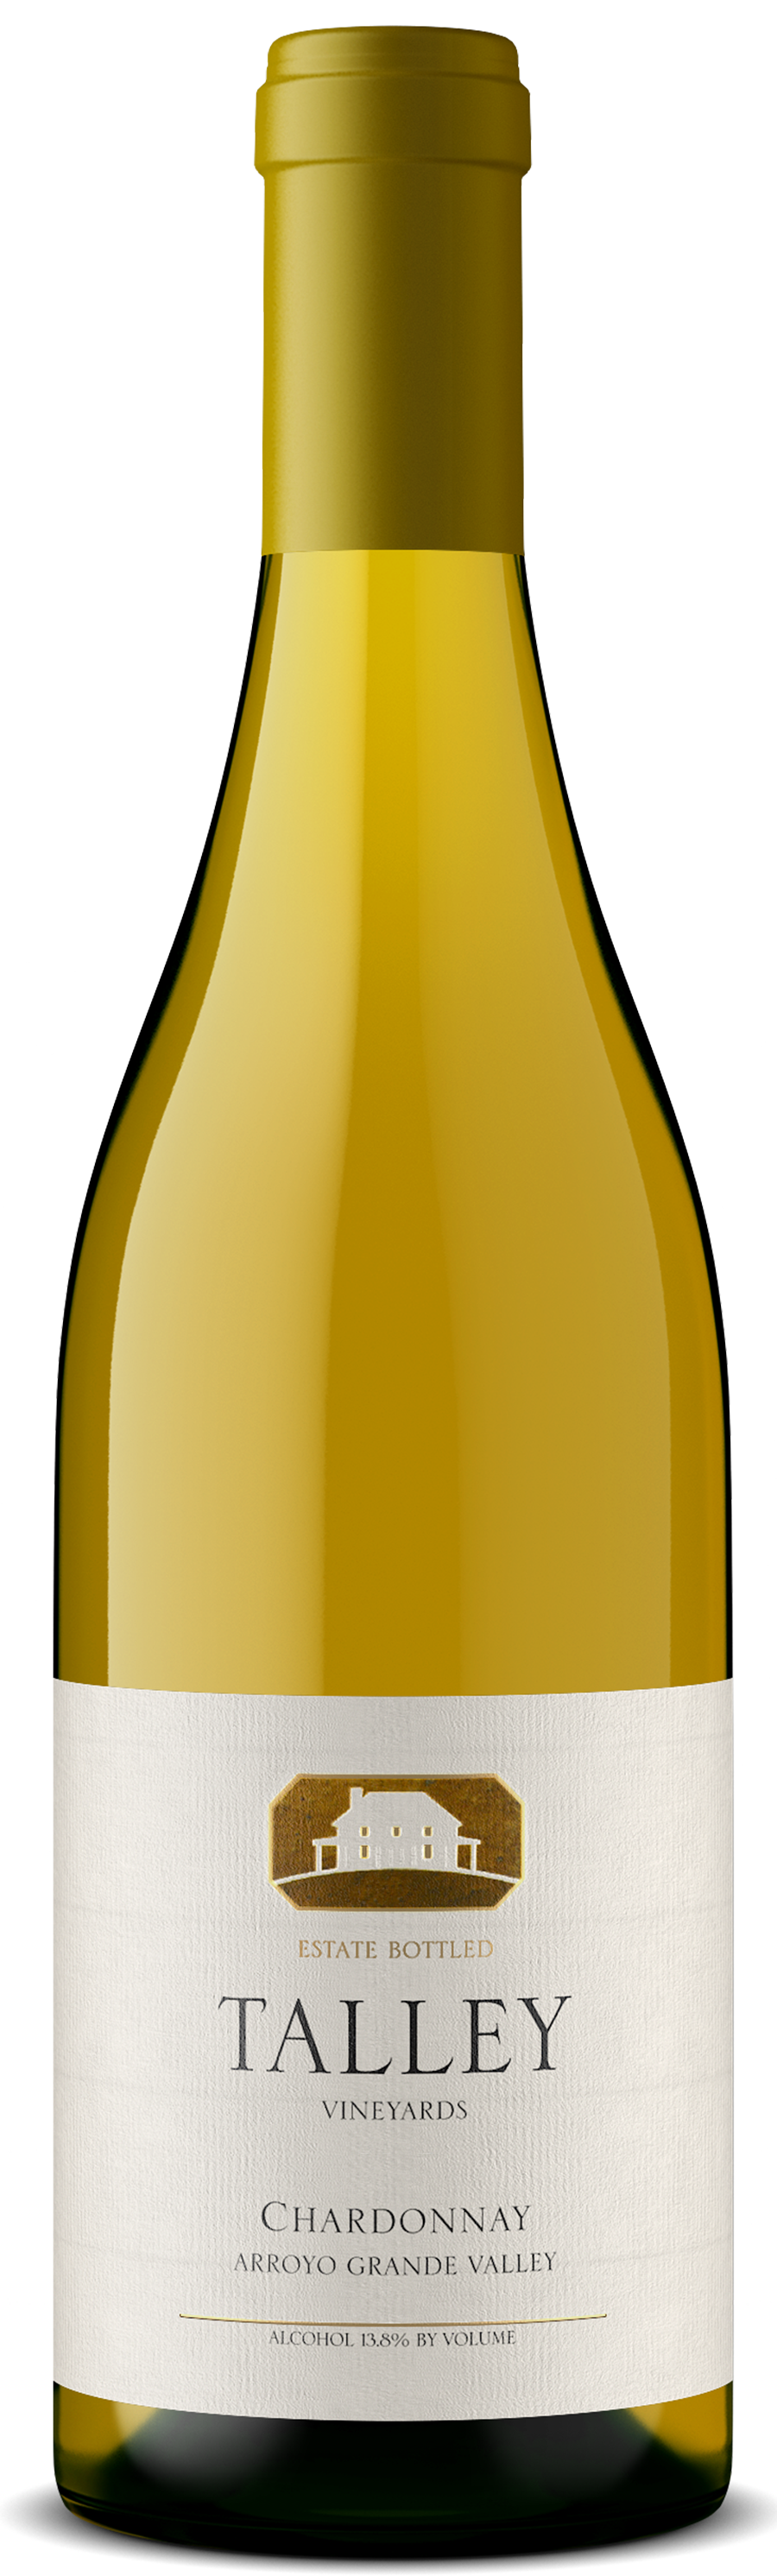 A bottle of Estate Chardonnay by Talley Vineyards.